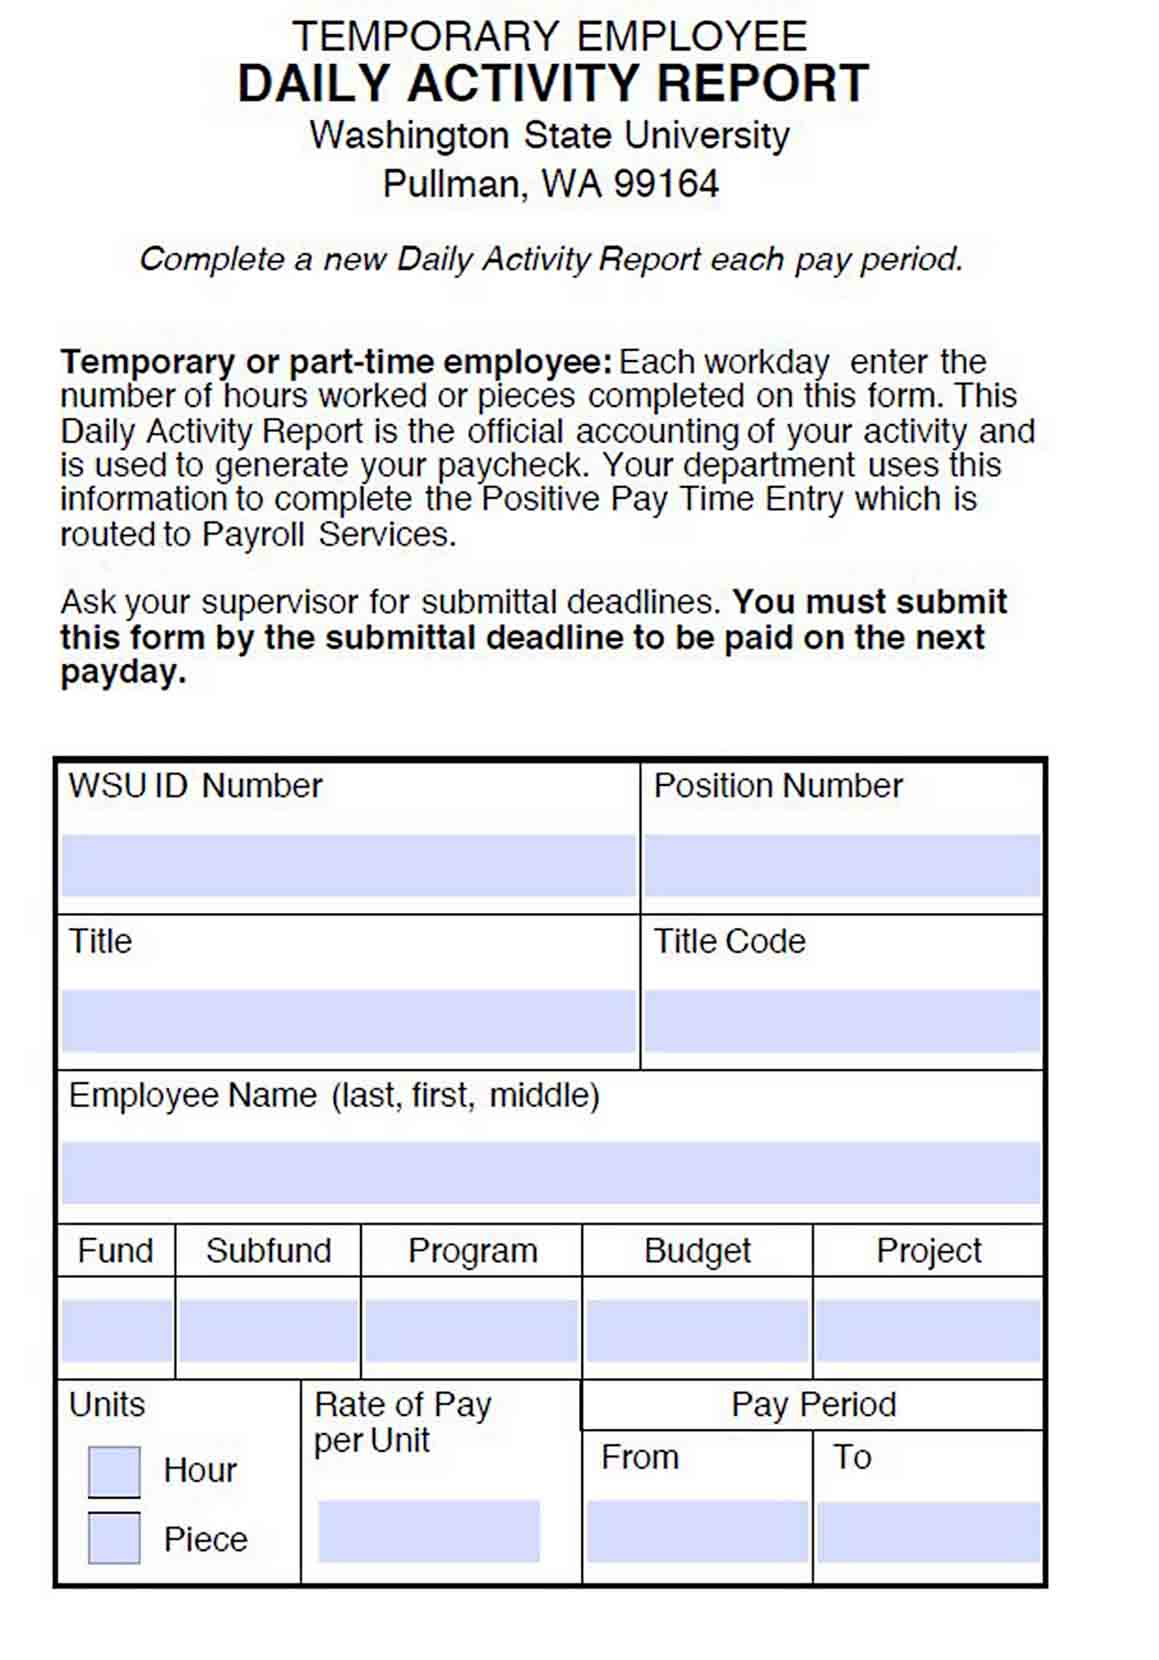 Daily Activity Report for Temporary Employee Template sample